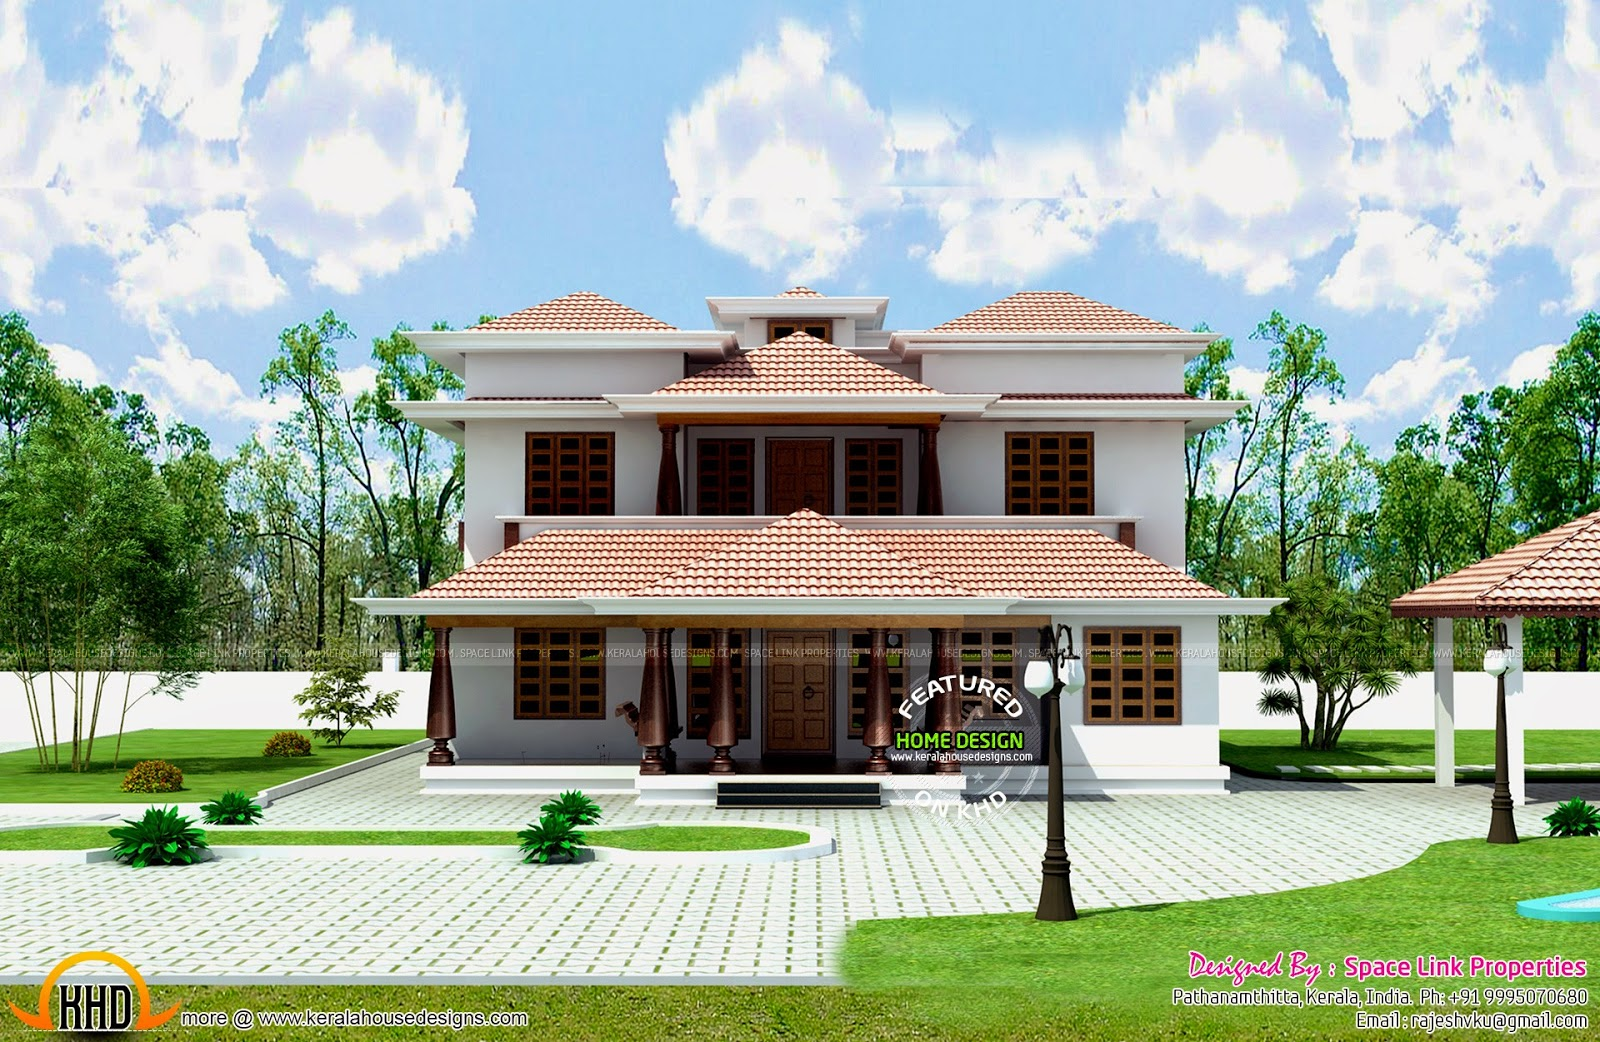 Typical kerala traditional house kerala home design and for Kerala traditional home plans